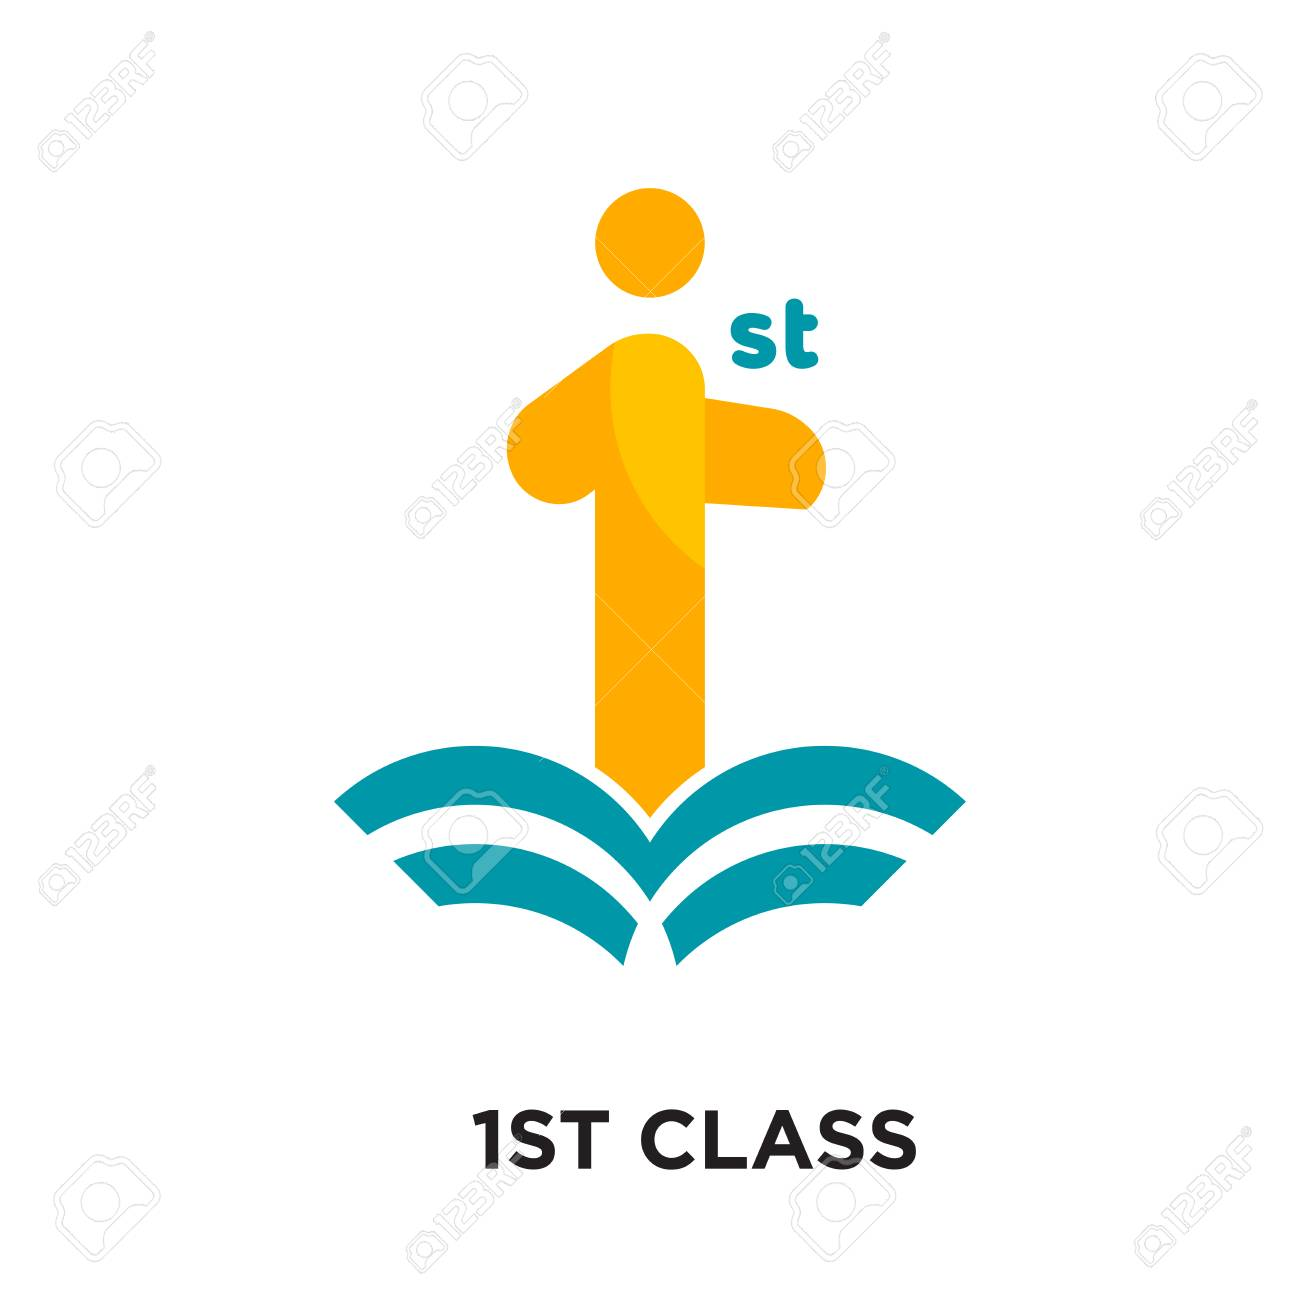 First Class Logo Isolated On White Background For Your Web And Royalty Free Cliparts Vectors And Stock Illustration Image 101120316